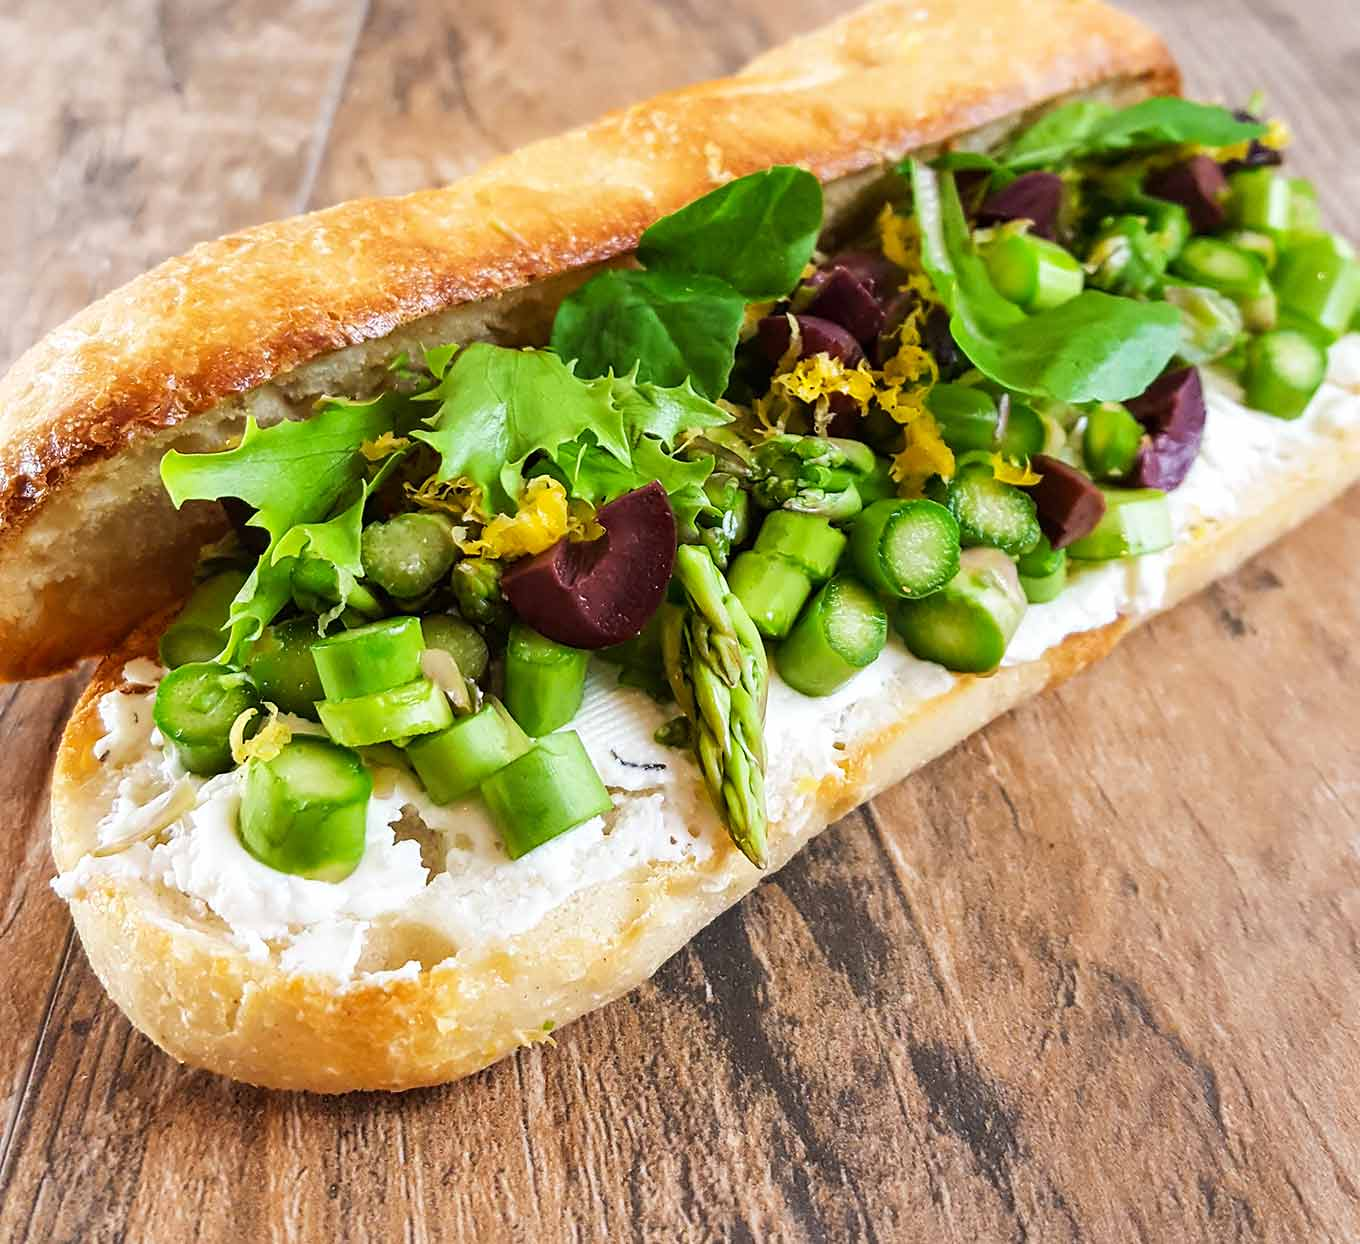 Lunch recipes - a picnic sandwich that holds until lunch time. Raw, crisp and slightly sweet asparagus from the farmers market stays crisp all day, even in this make-ahead version.